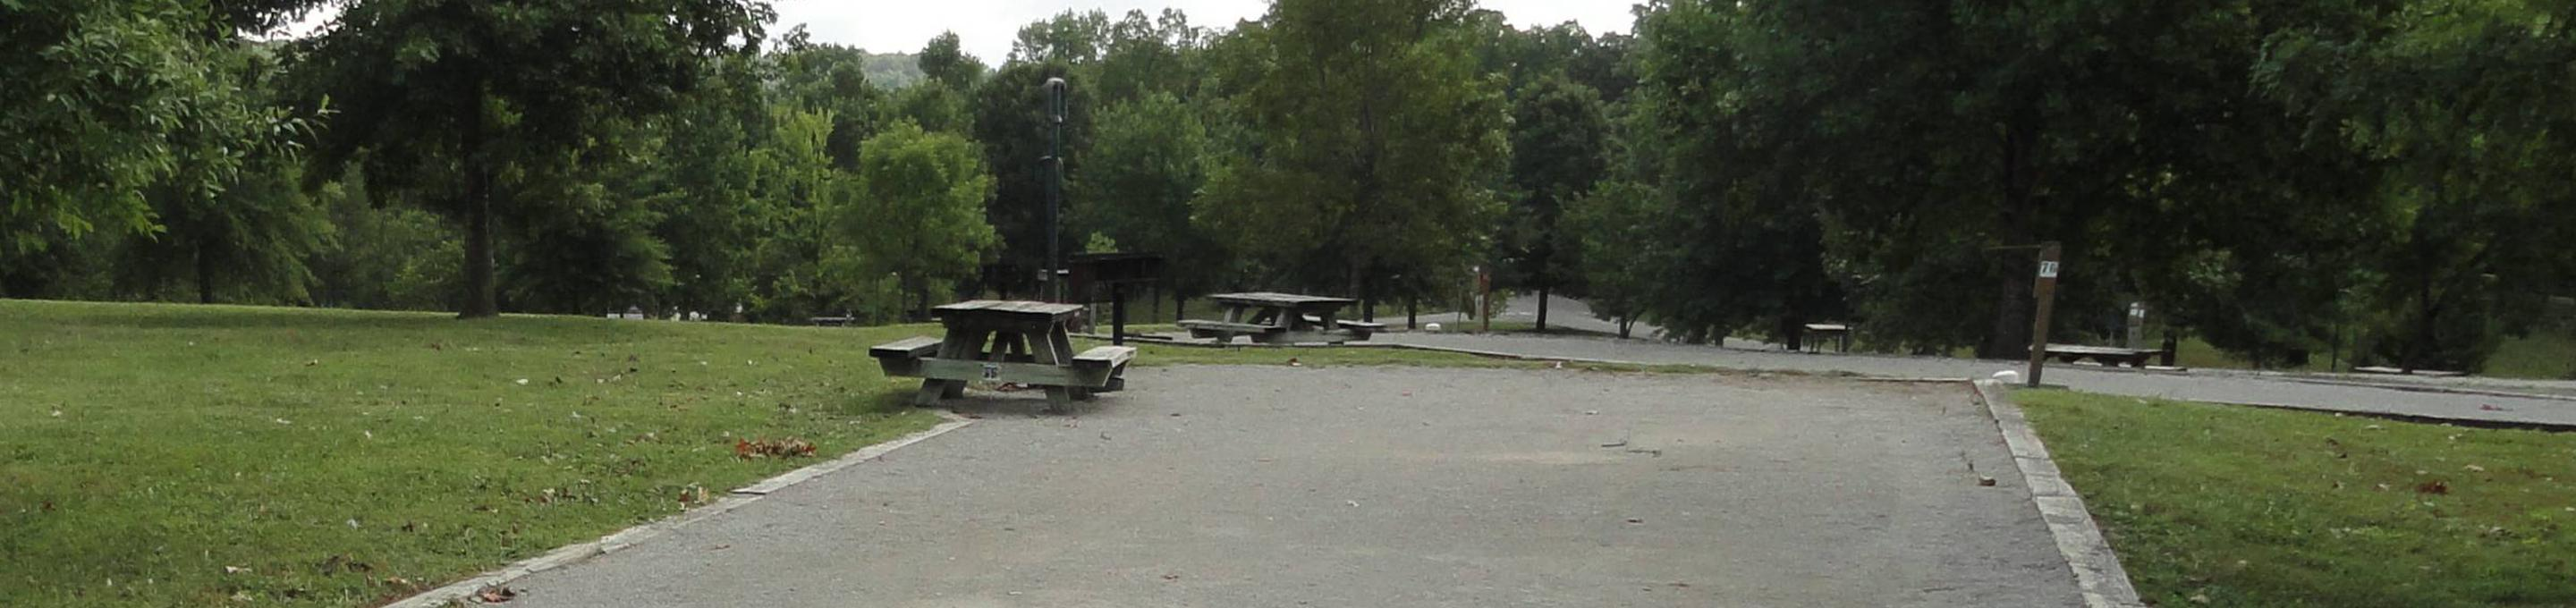 WILLOW GROVE CAMPGROUND SITE #76